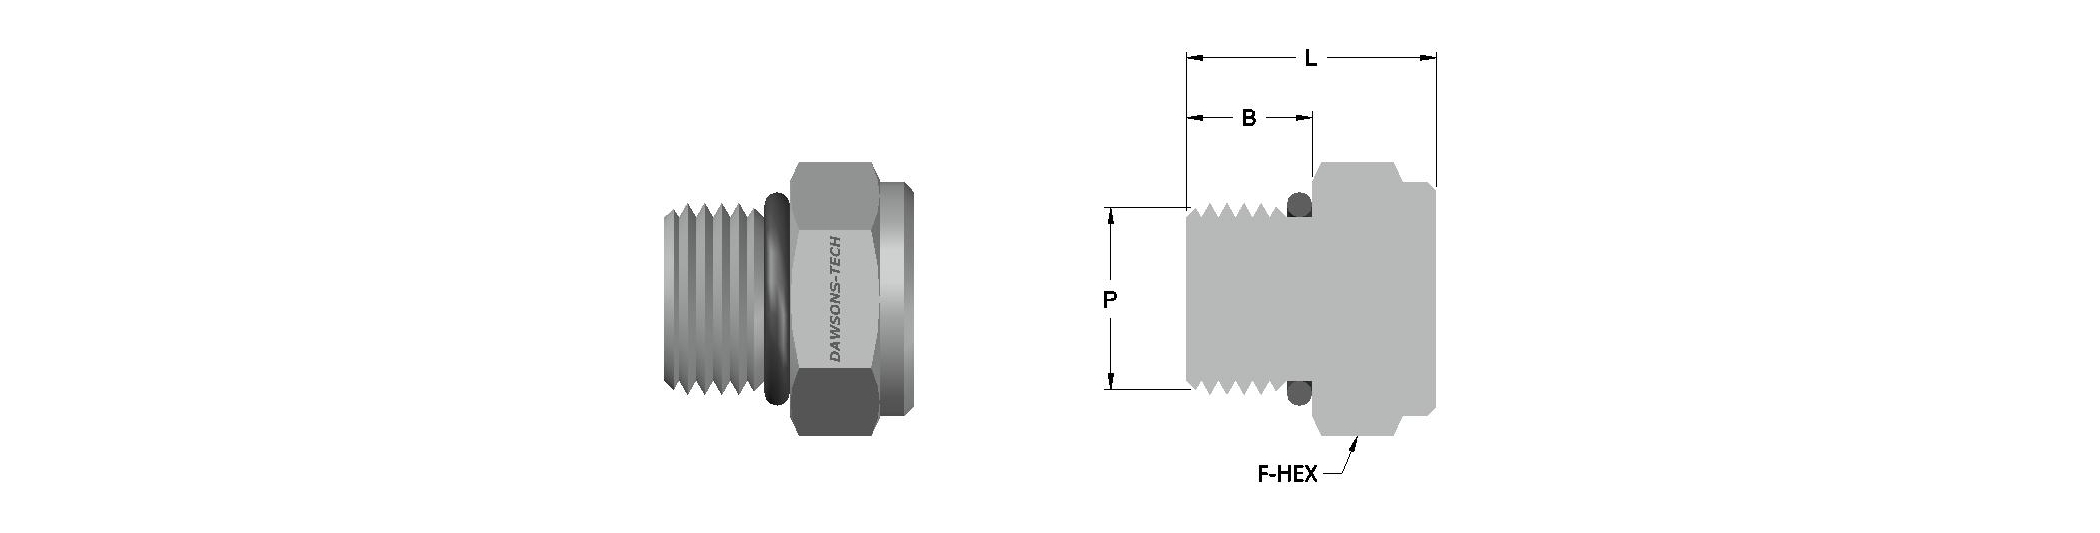 31 Hex Head Plug (SAE-MS) Threads